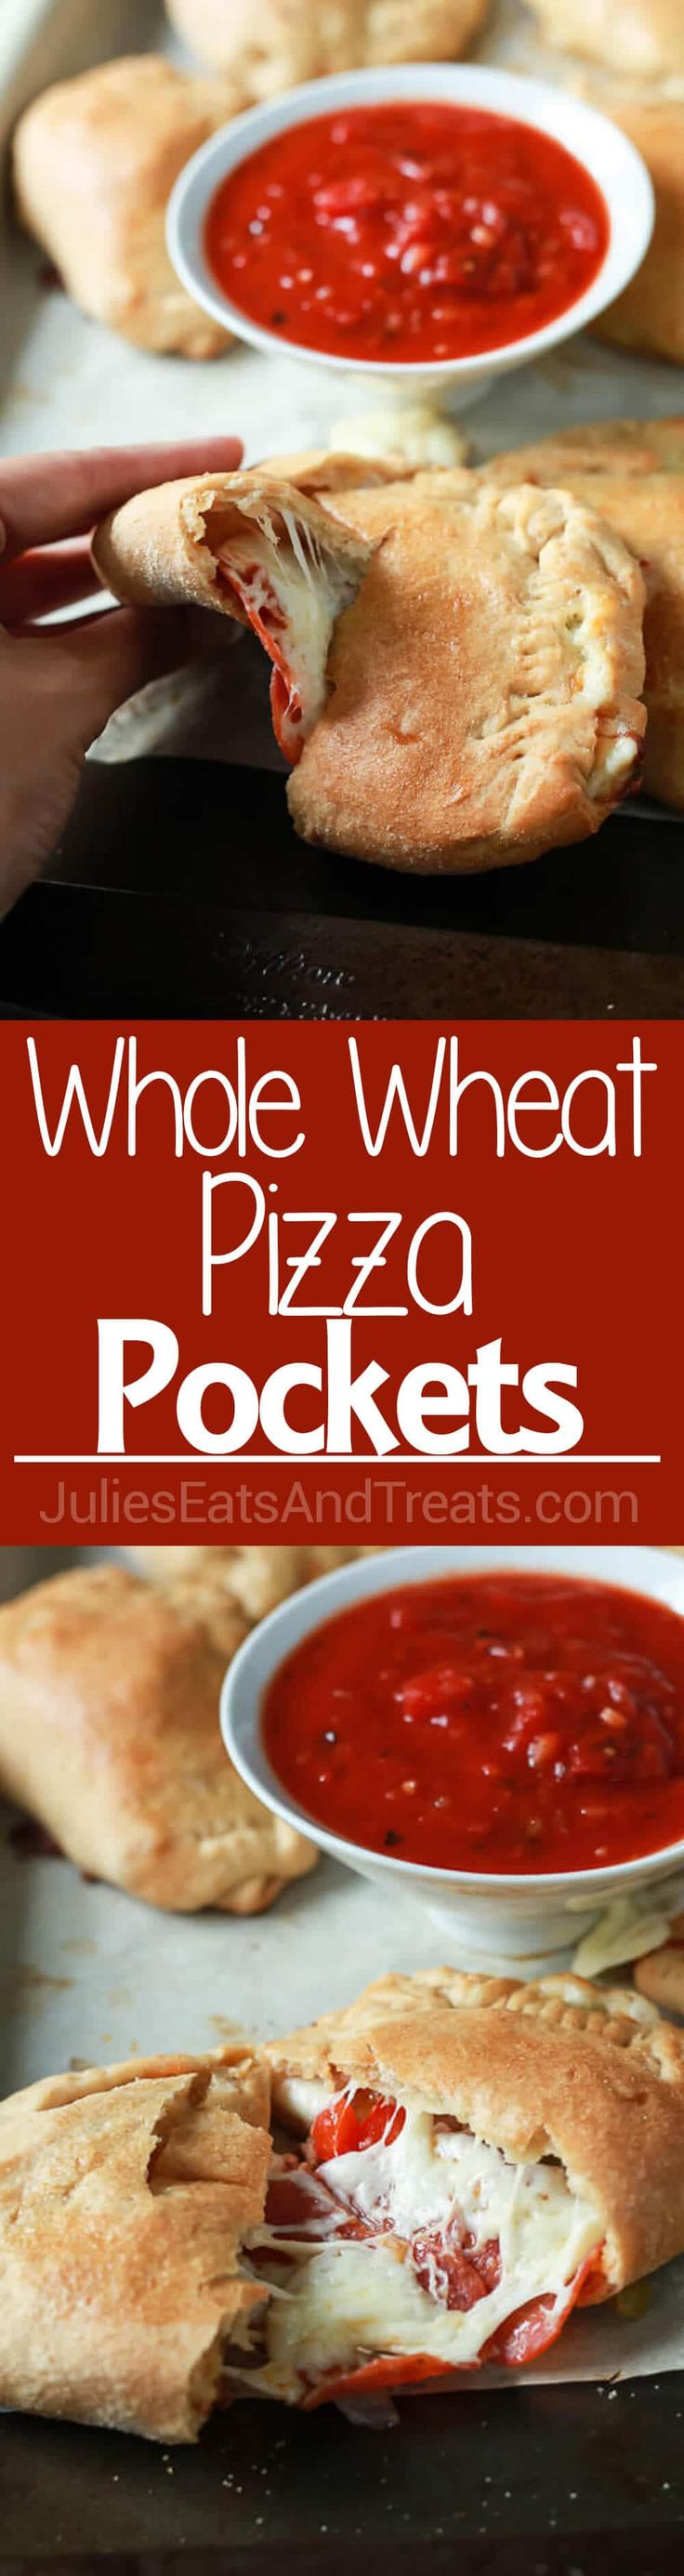 Easy Whole Wheat Pizza Pockets perfect for a quick weeknight meal and can be customized any way you like! via @julieseats